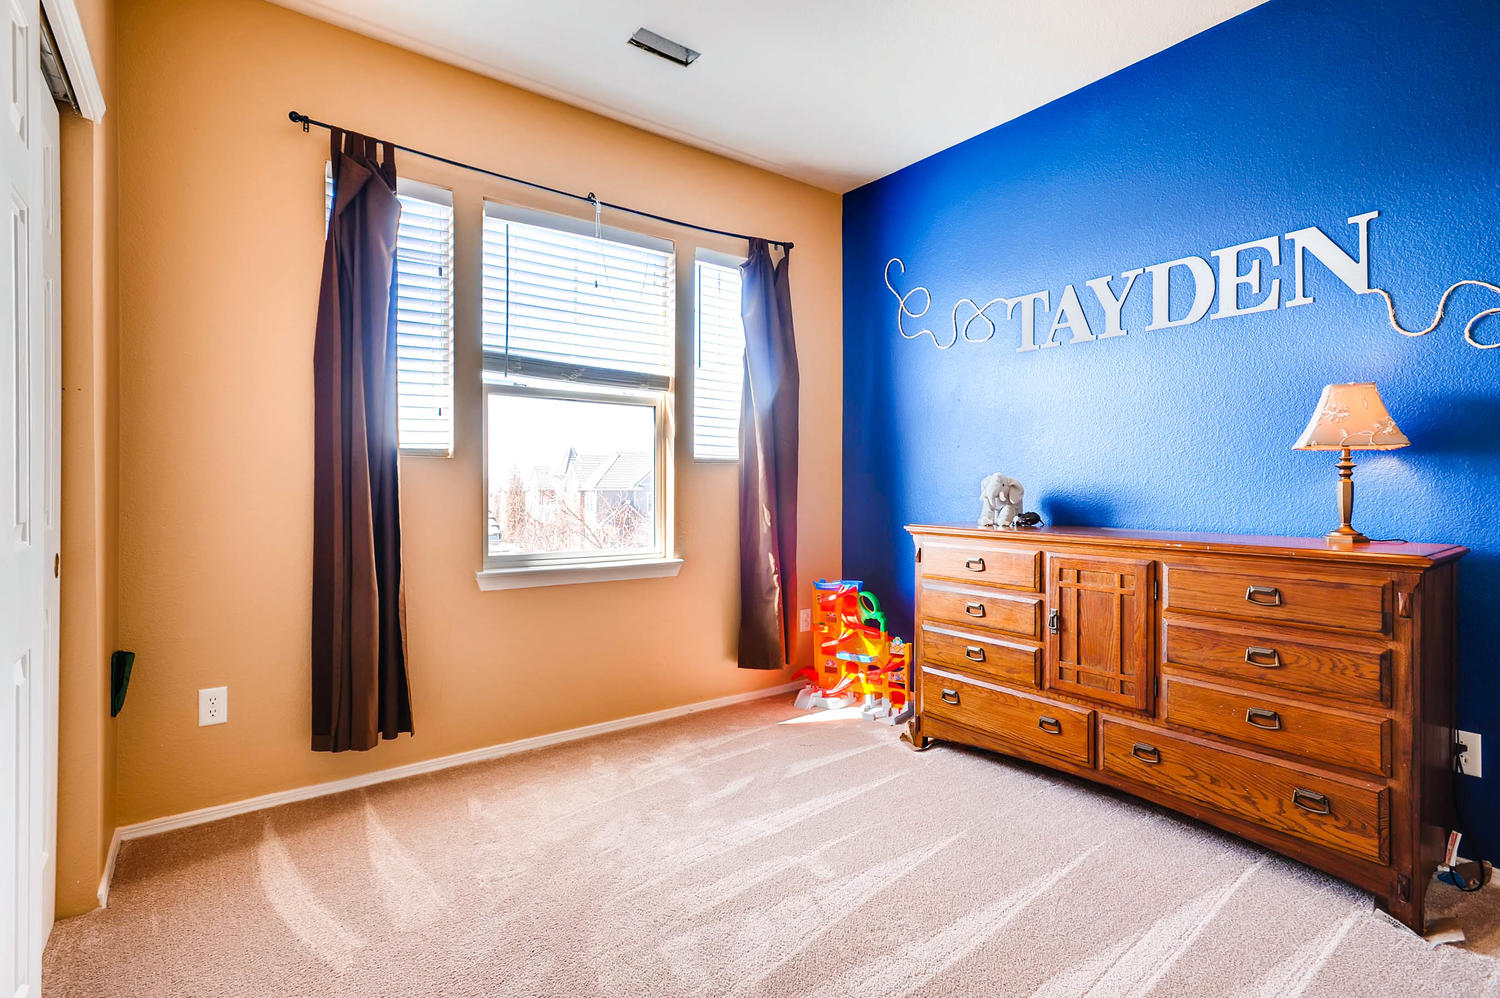 6723 S Winnipeg Cir Unit 102-large-021-4-Bedroom-1500x999-72dpi.jpg